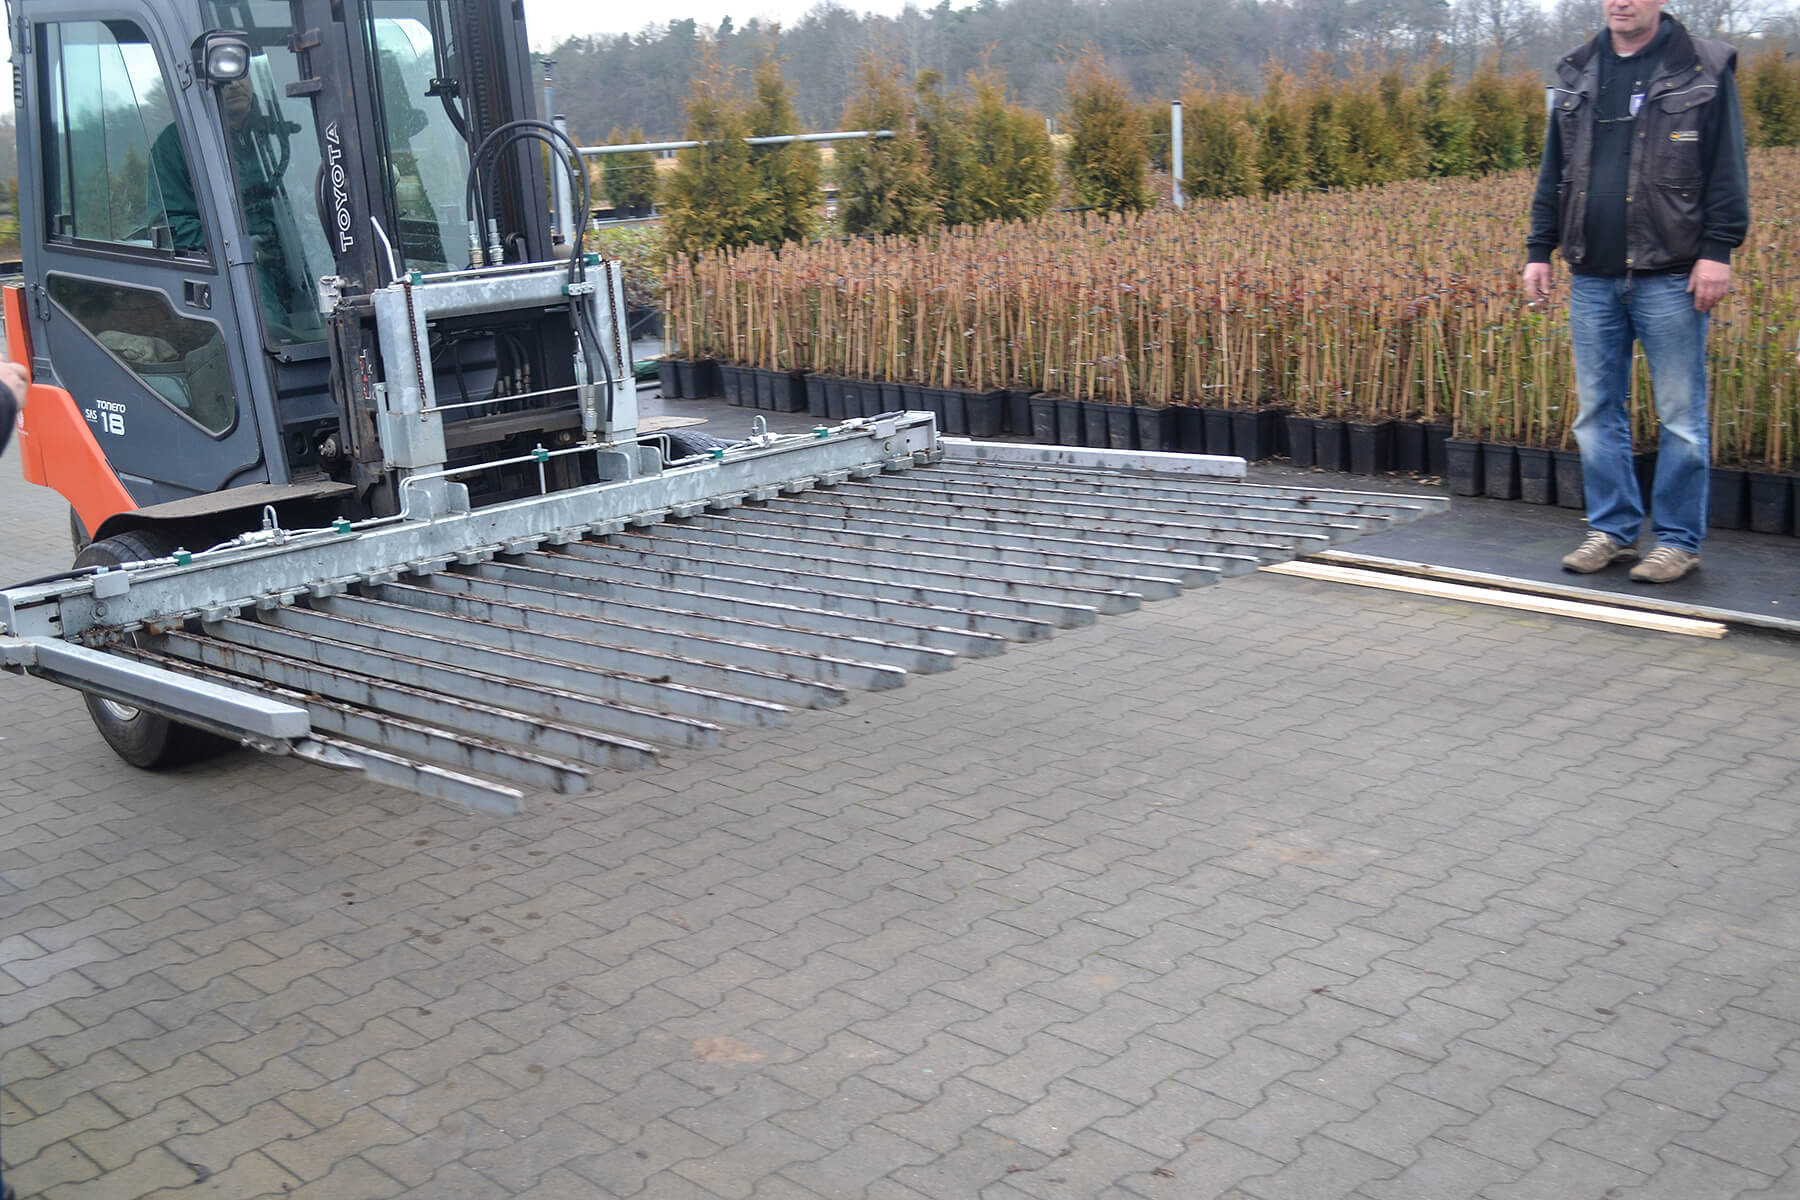 forlikft with special attachment for handling large number of small plants